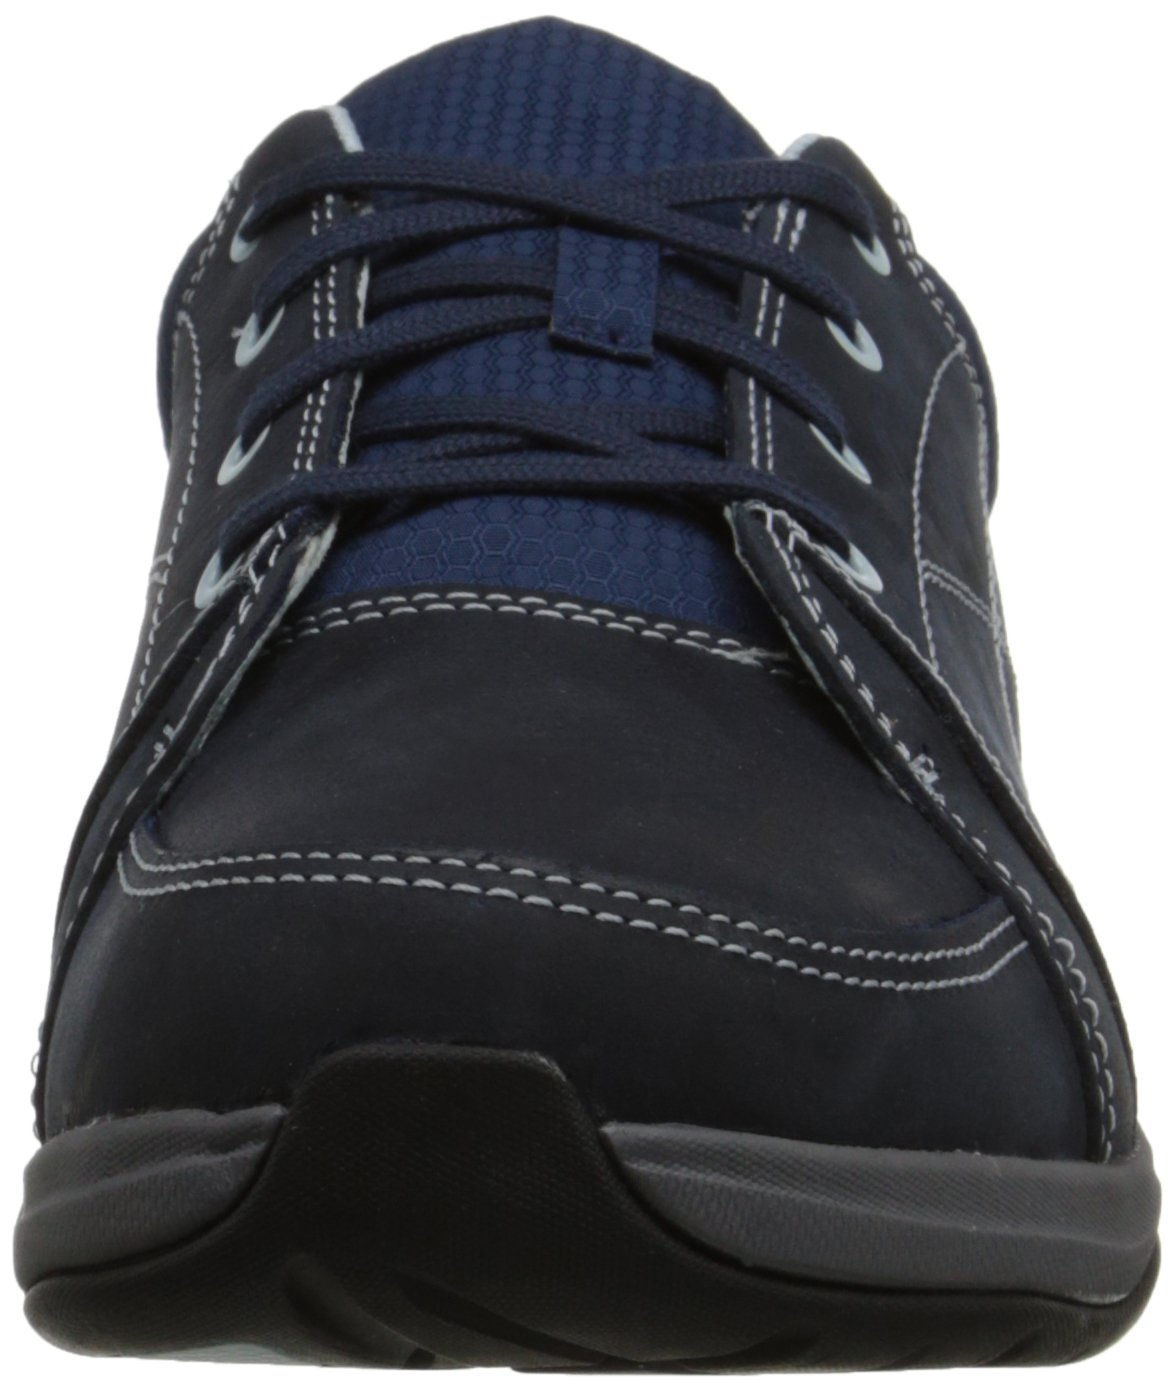 Ahnu Women's Taraval Walking Shoe B00RLDWS72 8.5 B(M) US|Dress Blue